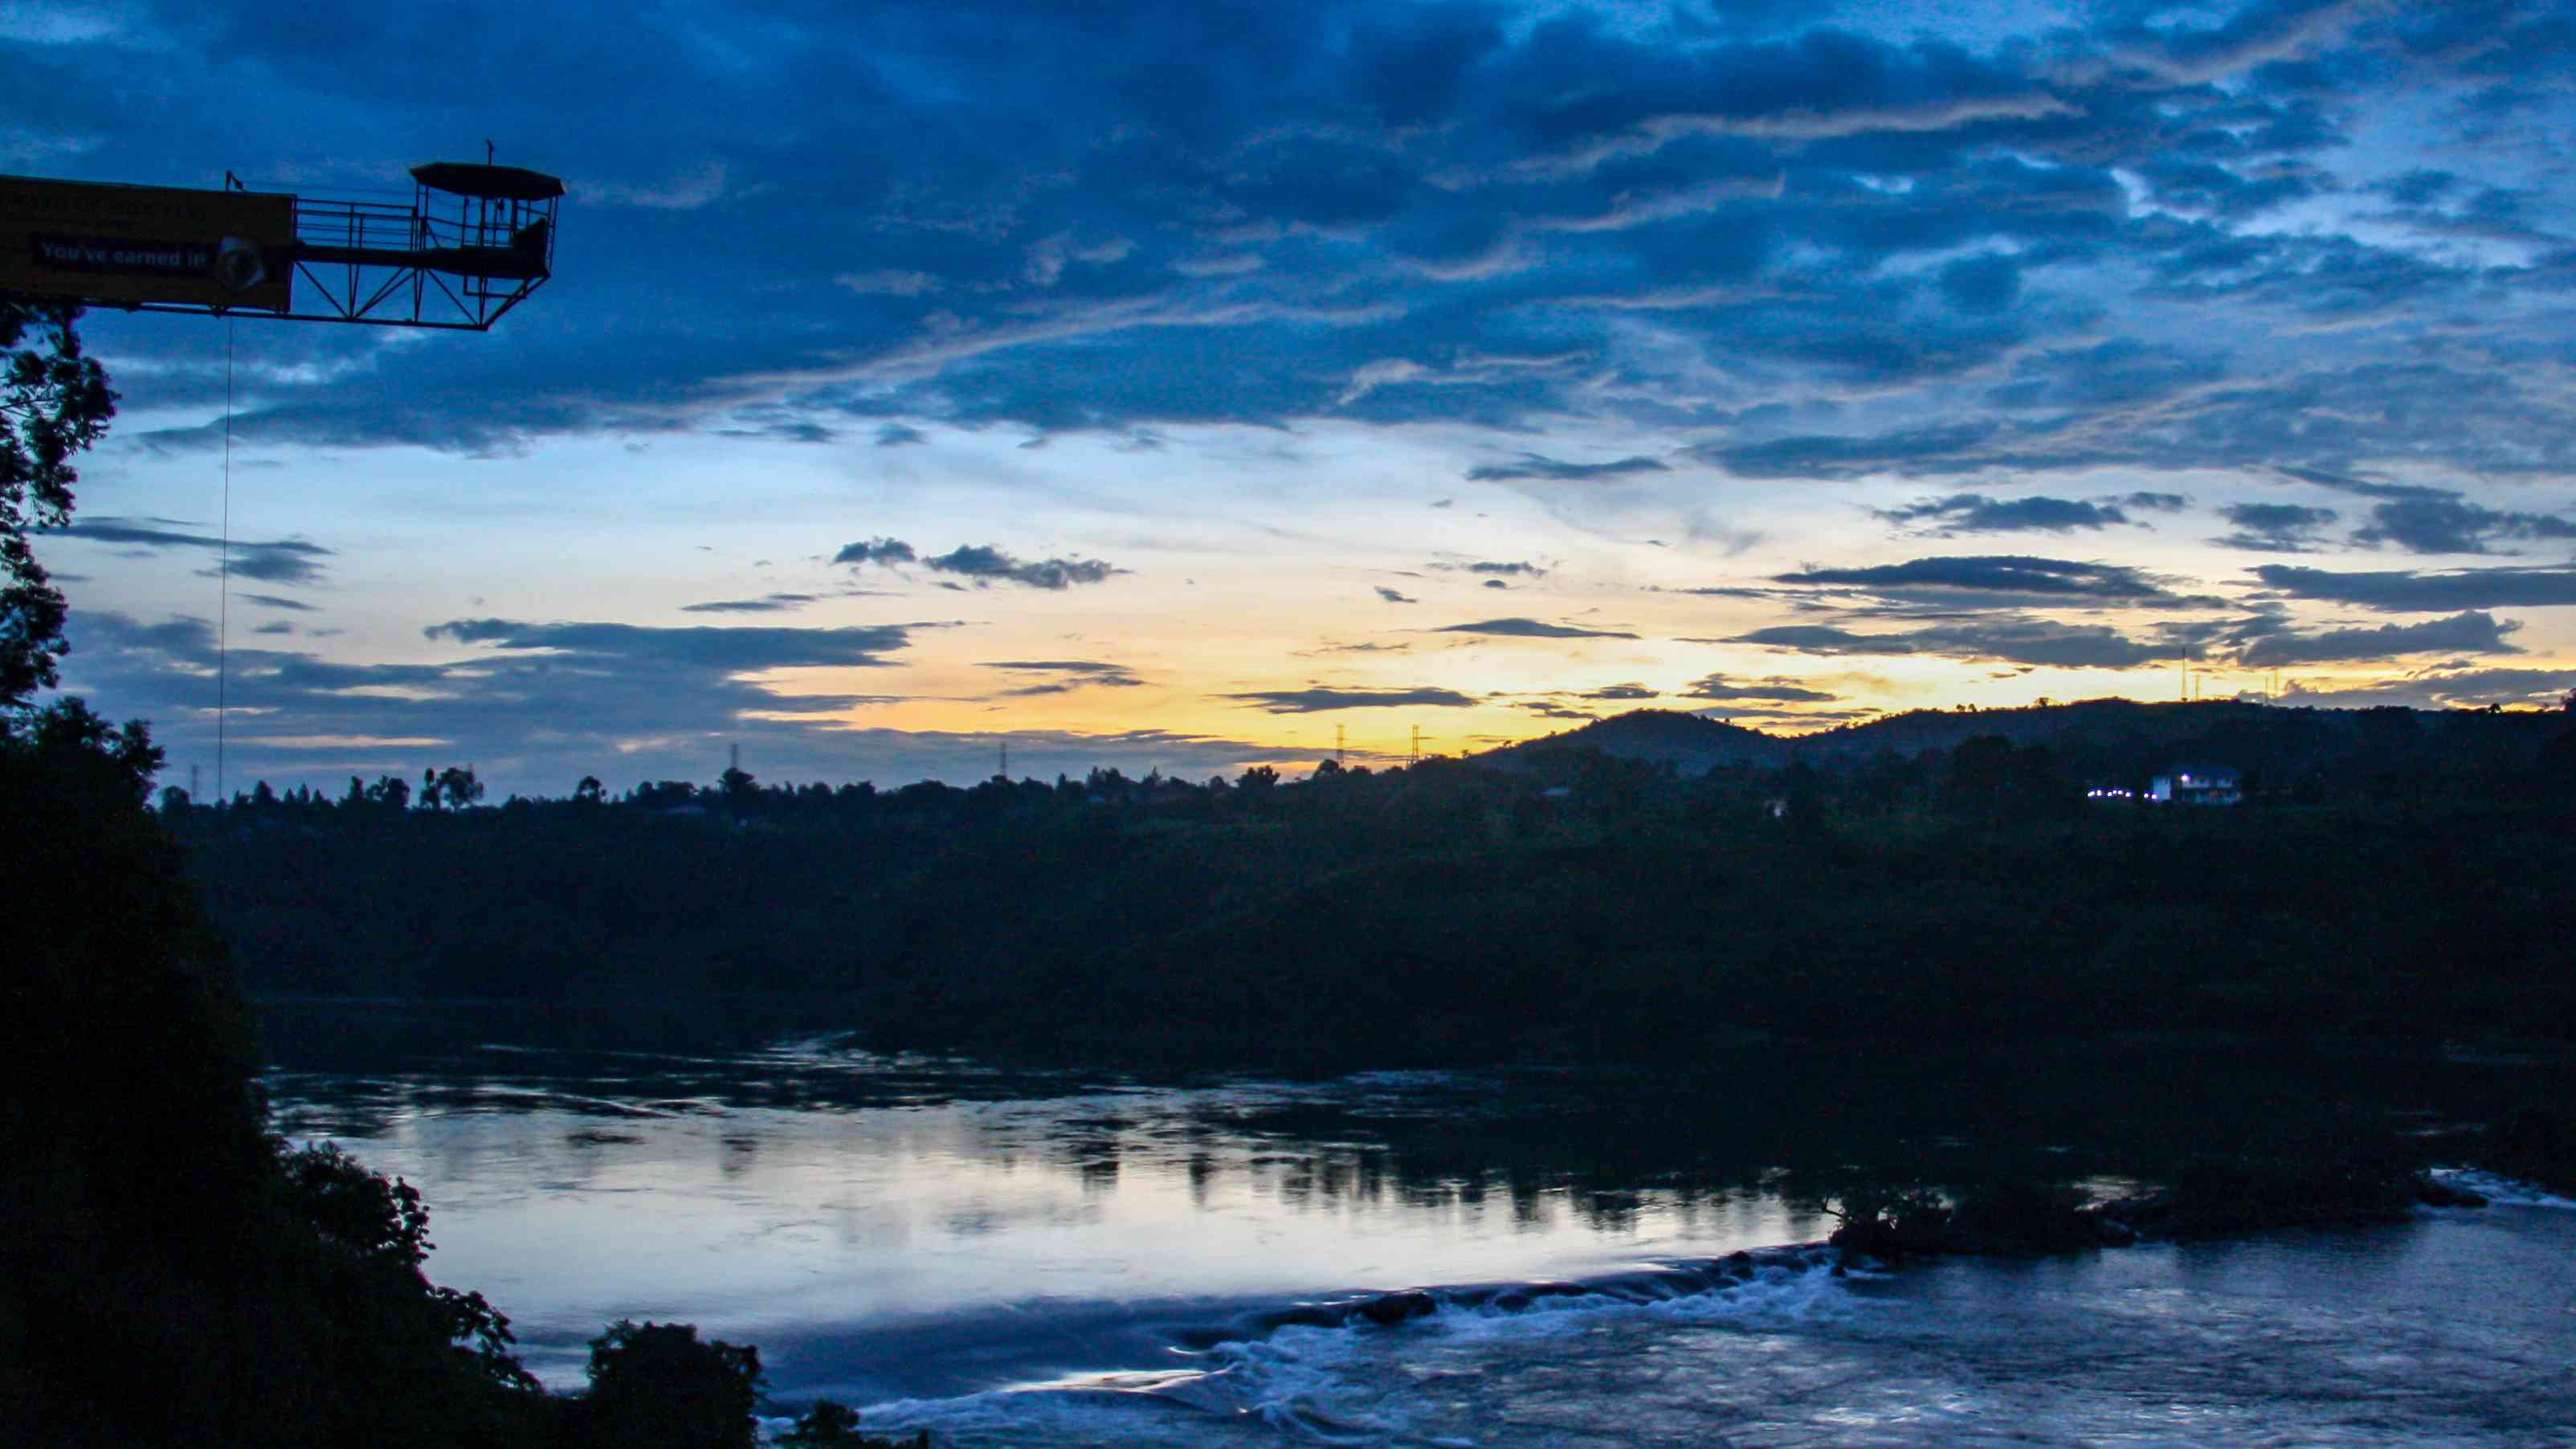 Sunset reflections over the Nile River and bungee jumping tower in Jinja, Uganda